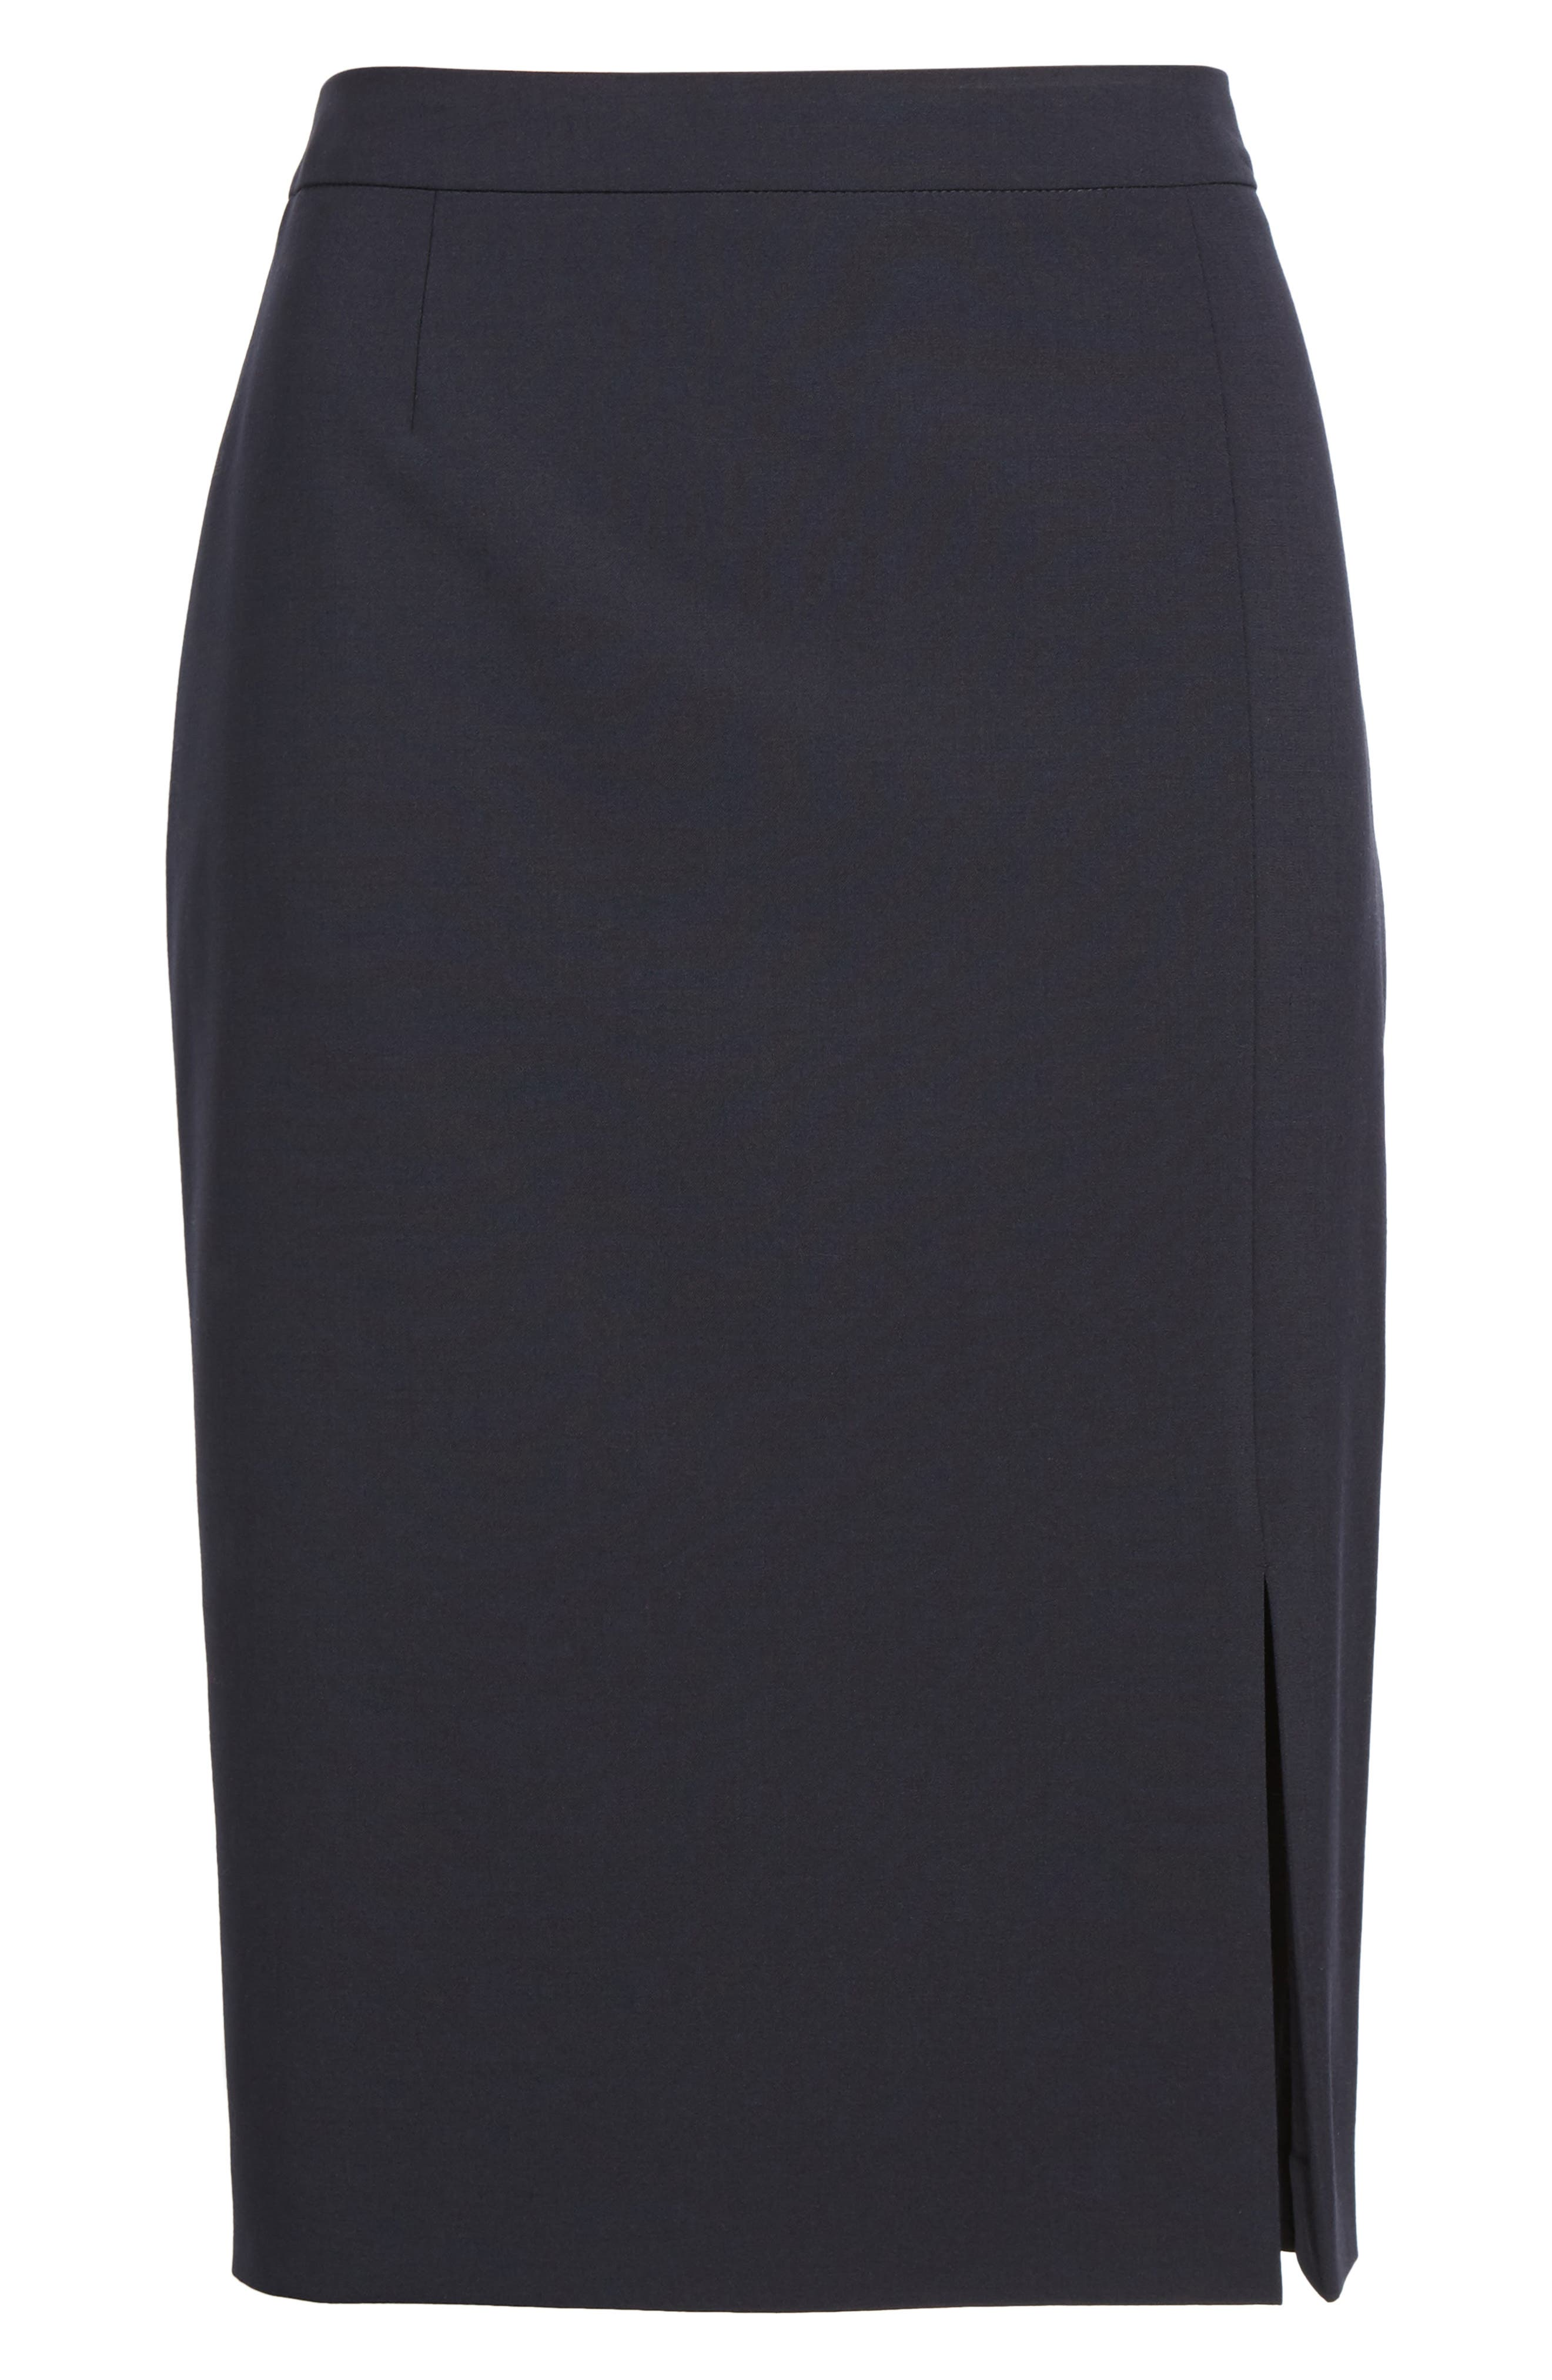 Volania Stretch Wool Side Slit Pencil Skirt,                             Alternate thumbnail 6, color,                             Navy